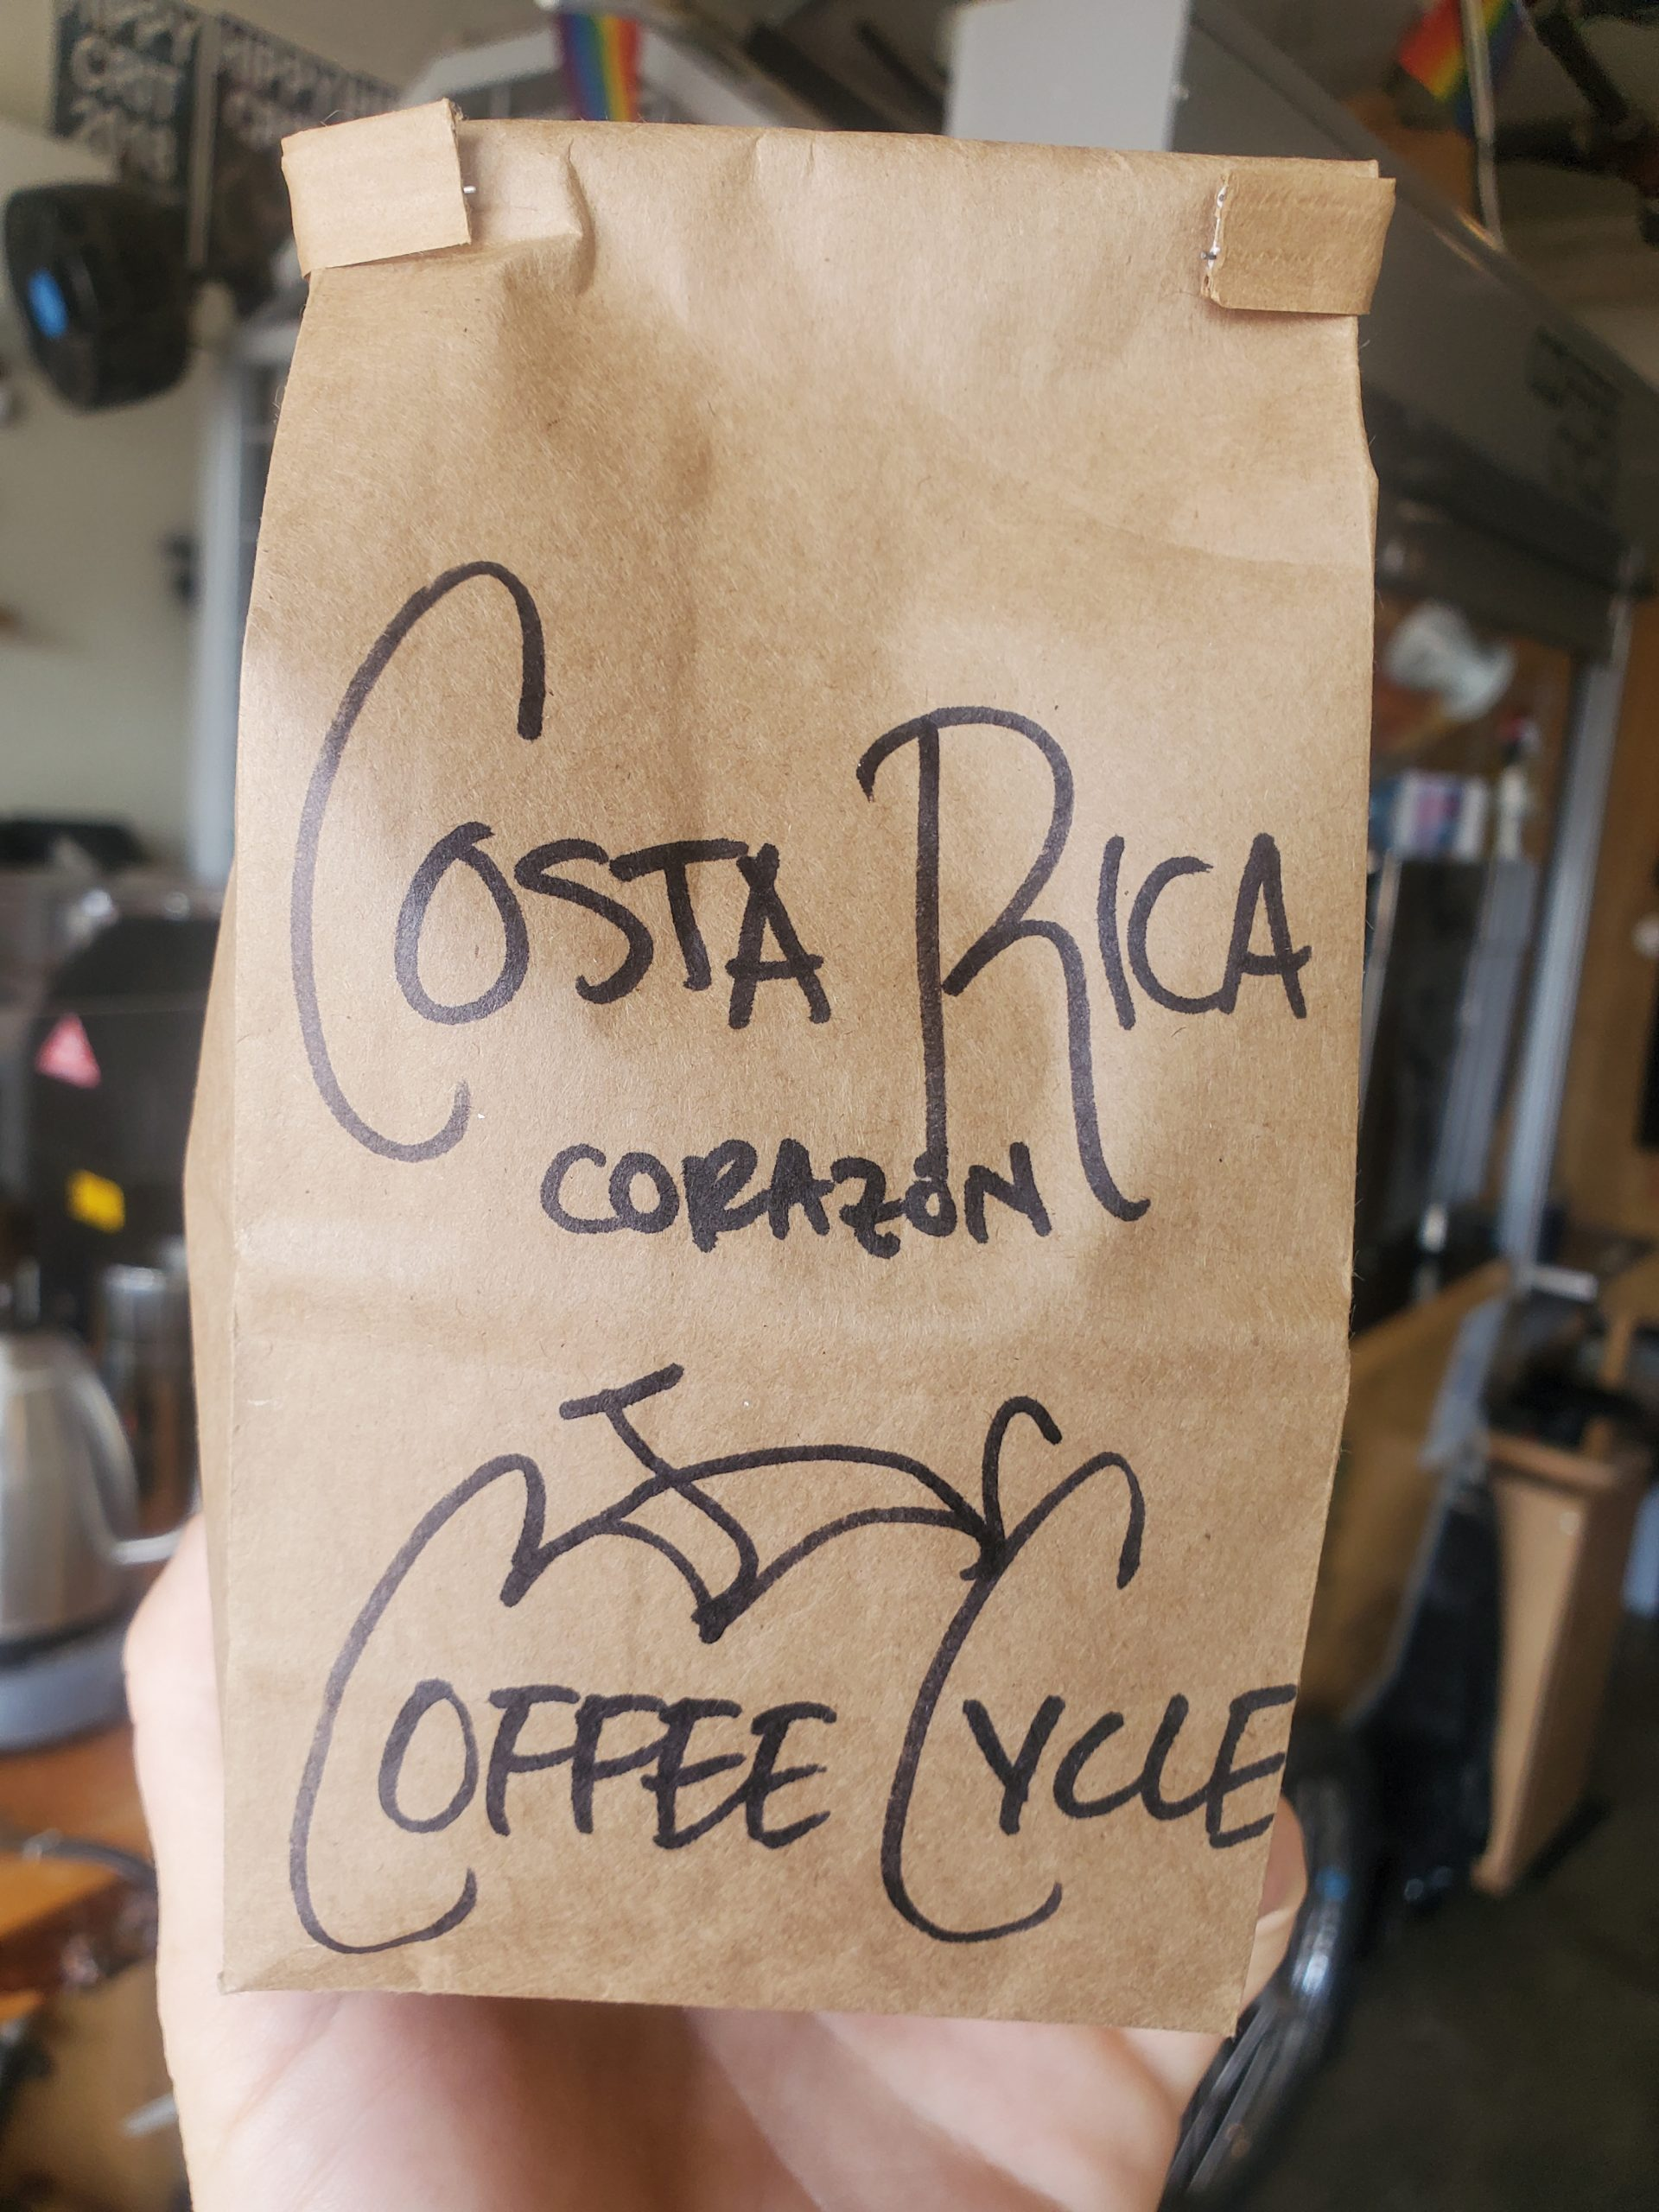 Costa Rica Corazon 250g (Coffee Cycle Exclusive)